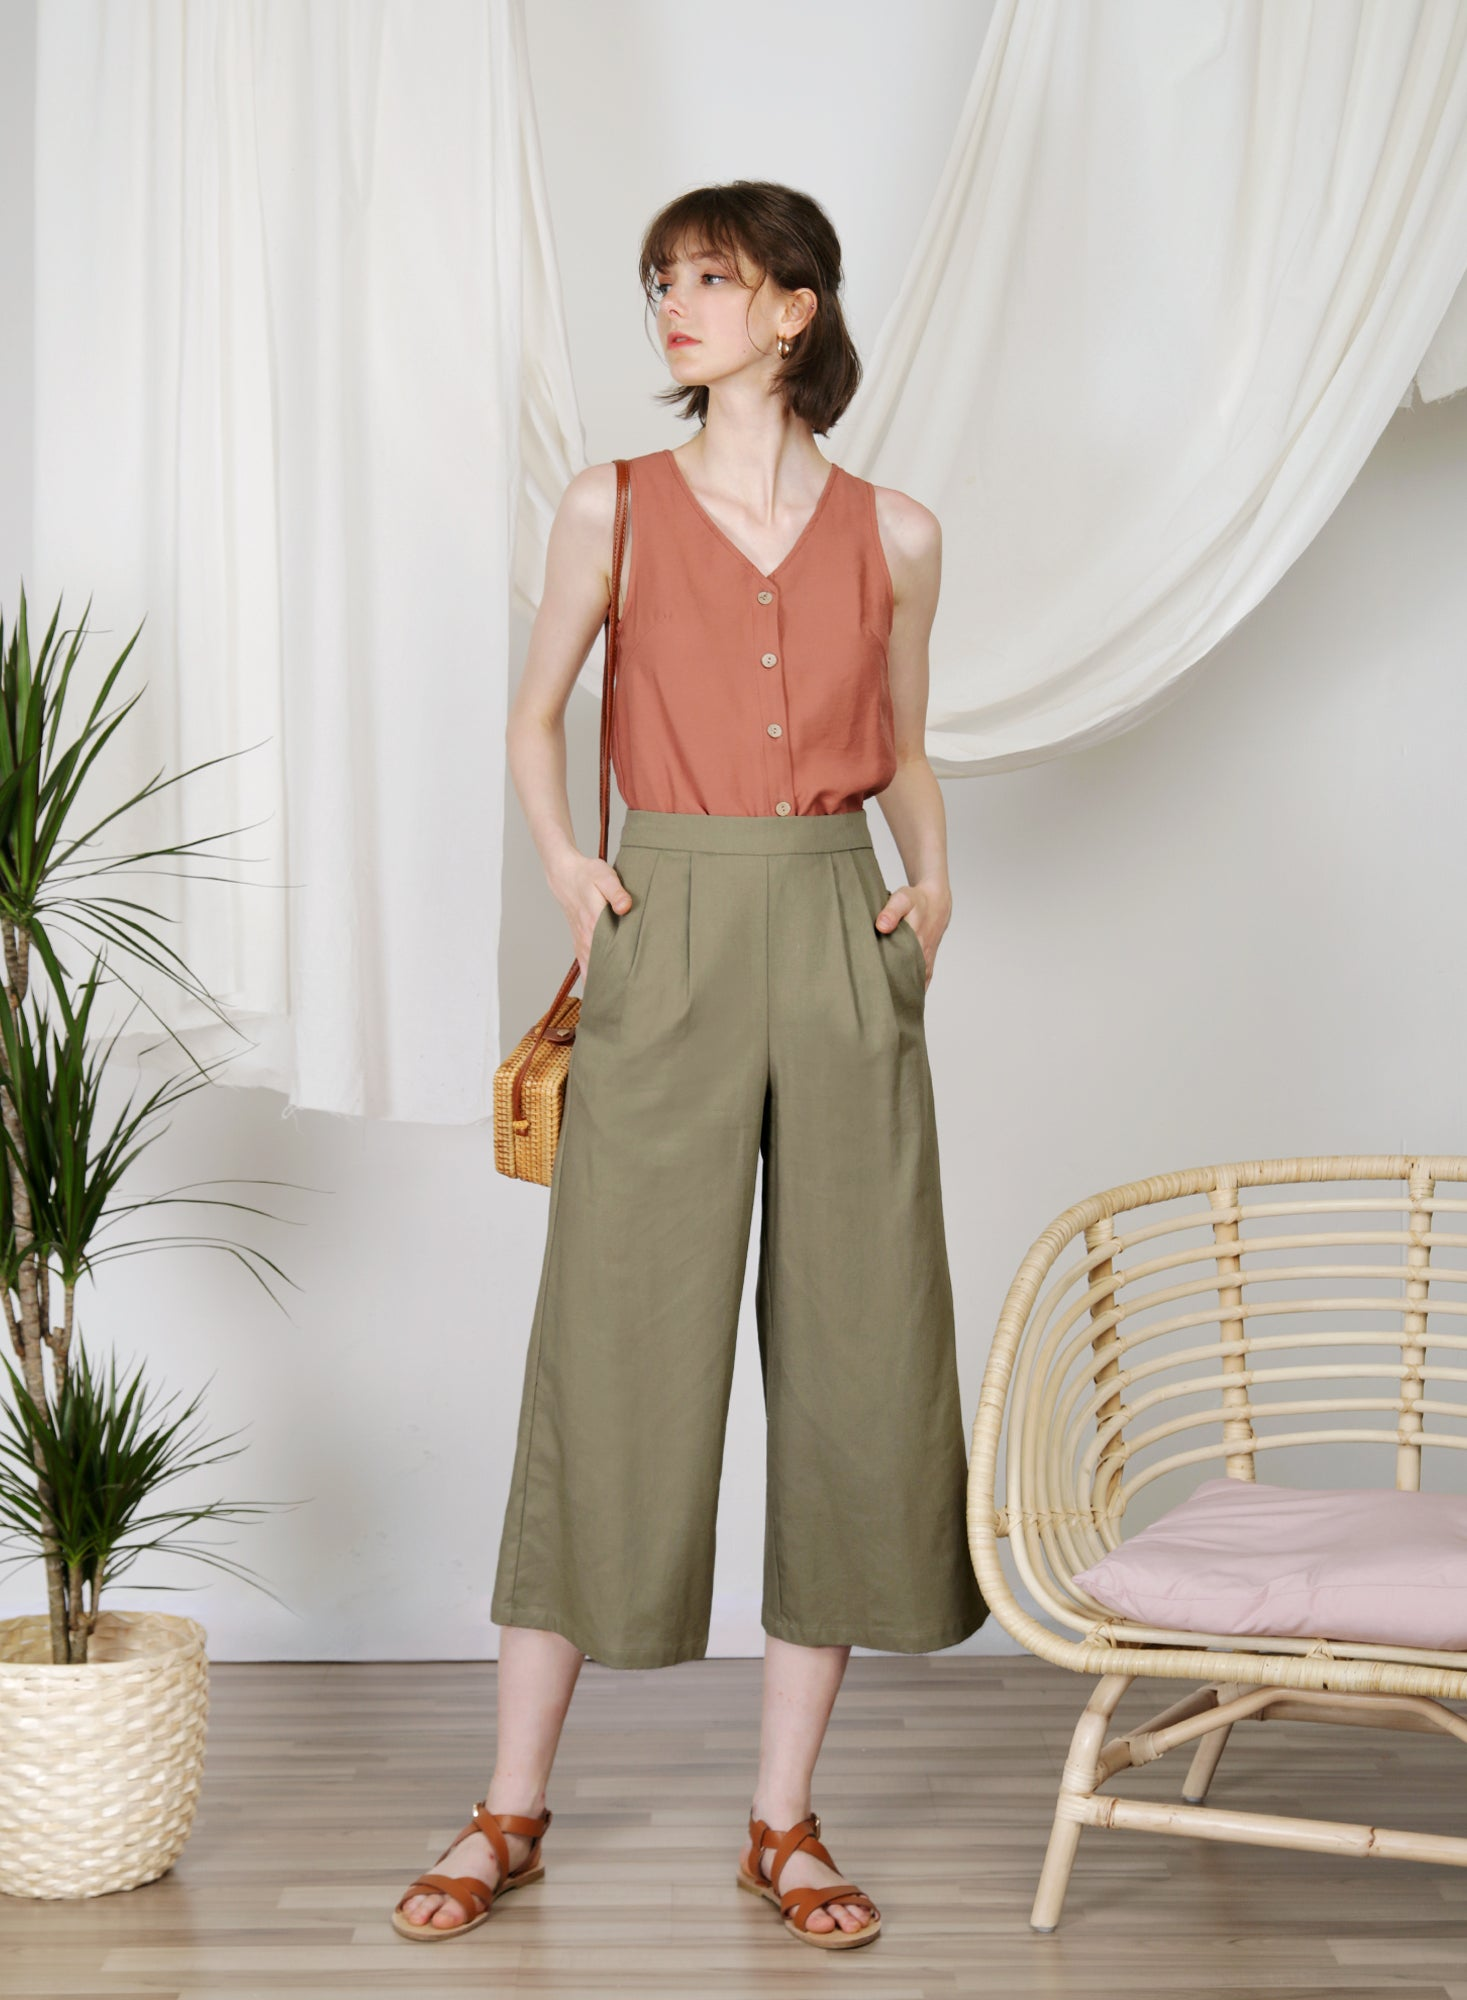 Journey Flared Linen Pants (Olive) at $ 38.00 only sold at And Well Dressed Online Fashion Store Singapore